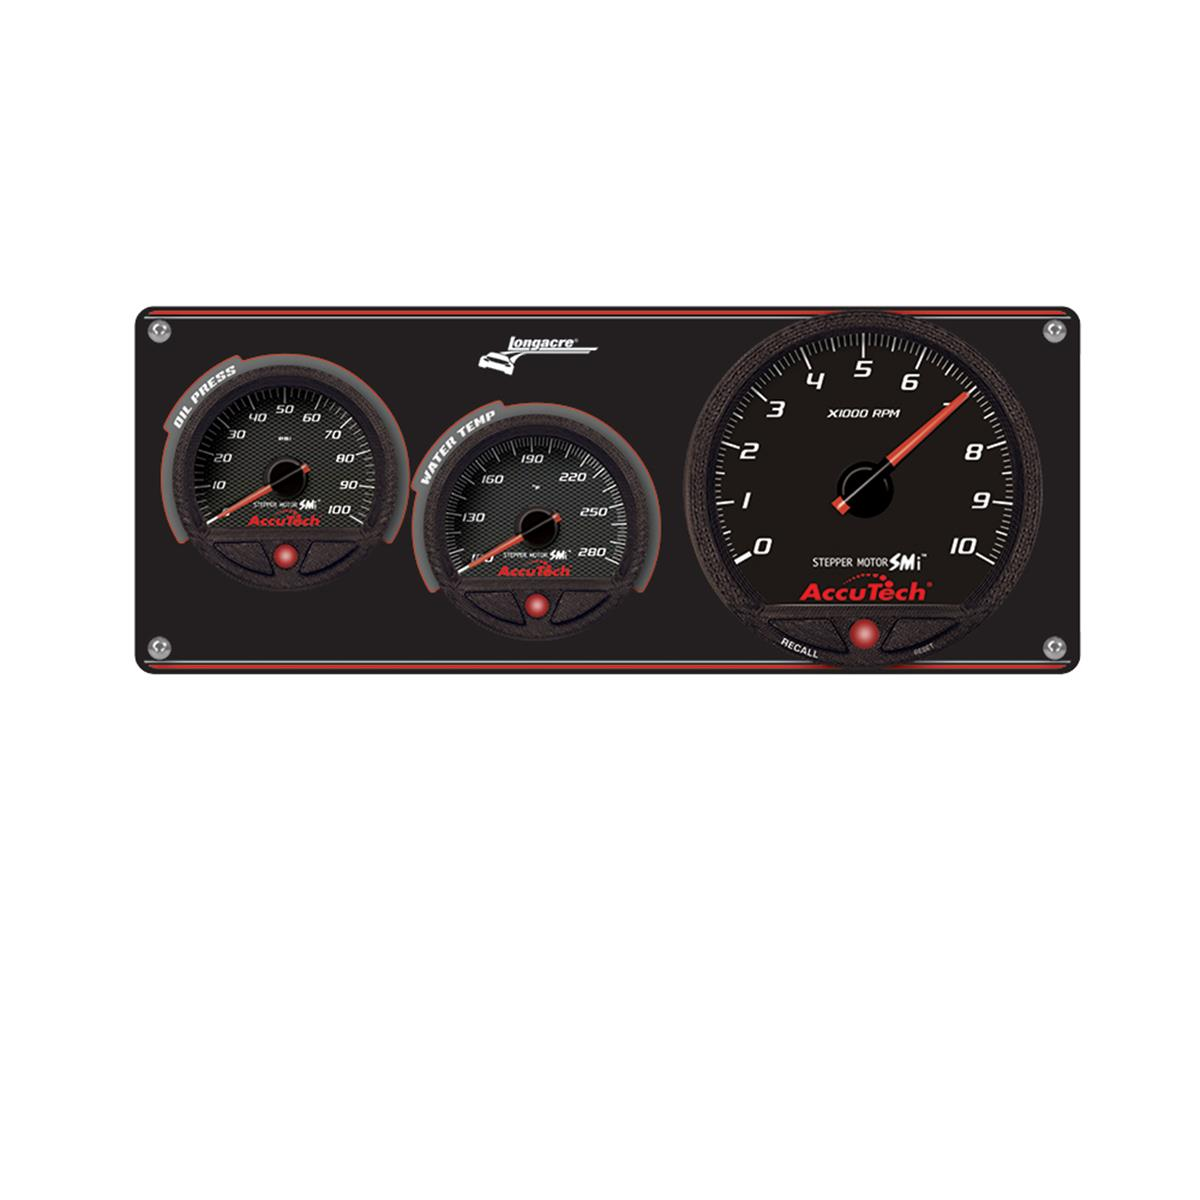 2 Gauge Aluminum Panel with AccuTech™ SMi™ Gauges & Tach - OP,WT